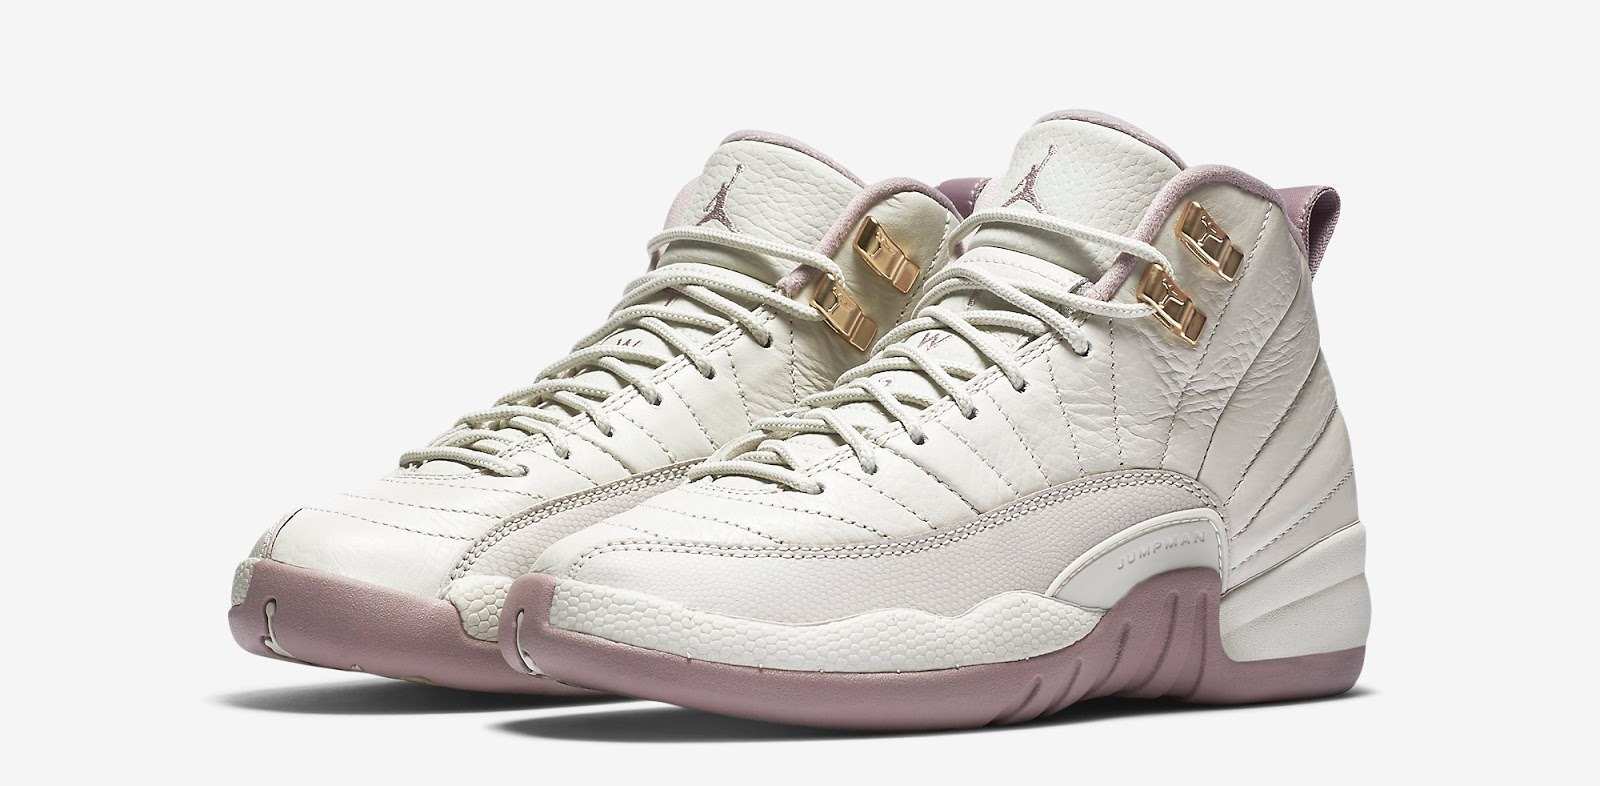 14788b50c762 Girls Air Jordan 12 Retro GG Light Bone Metallic Gold Star-Plum Fog Release  Reminder